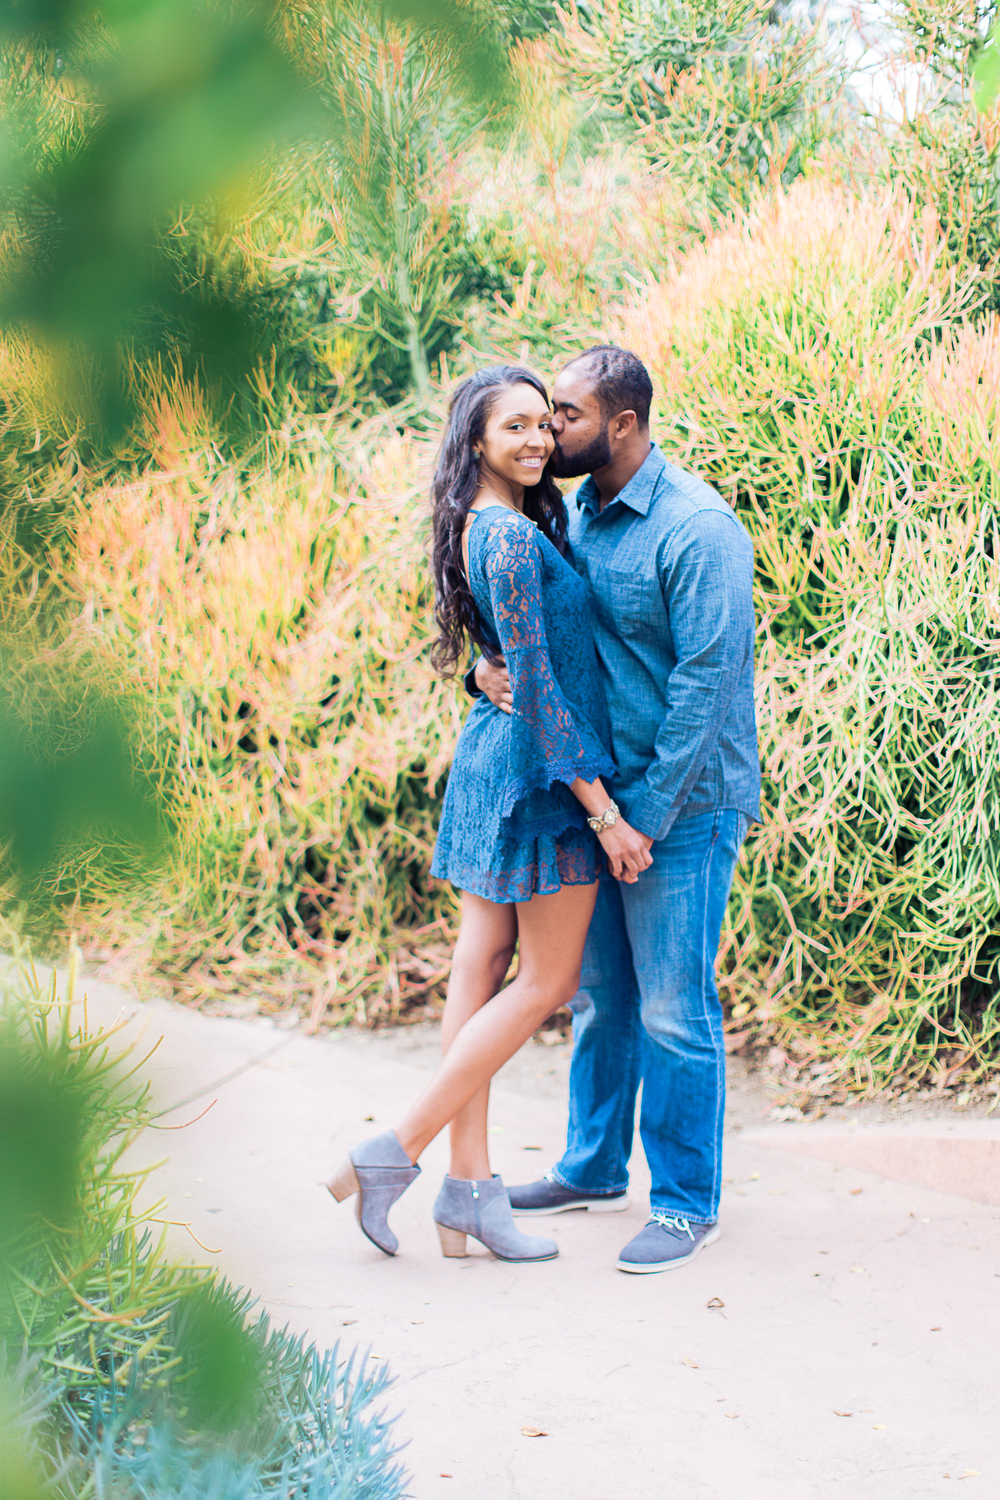 Christa and Greg Engagement_Brandon J Ferlin Photography-4.jpg